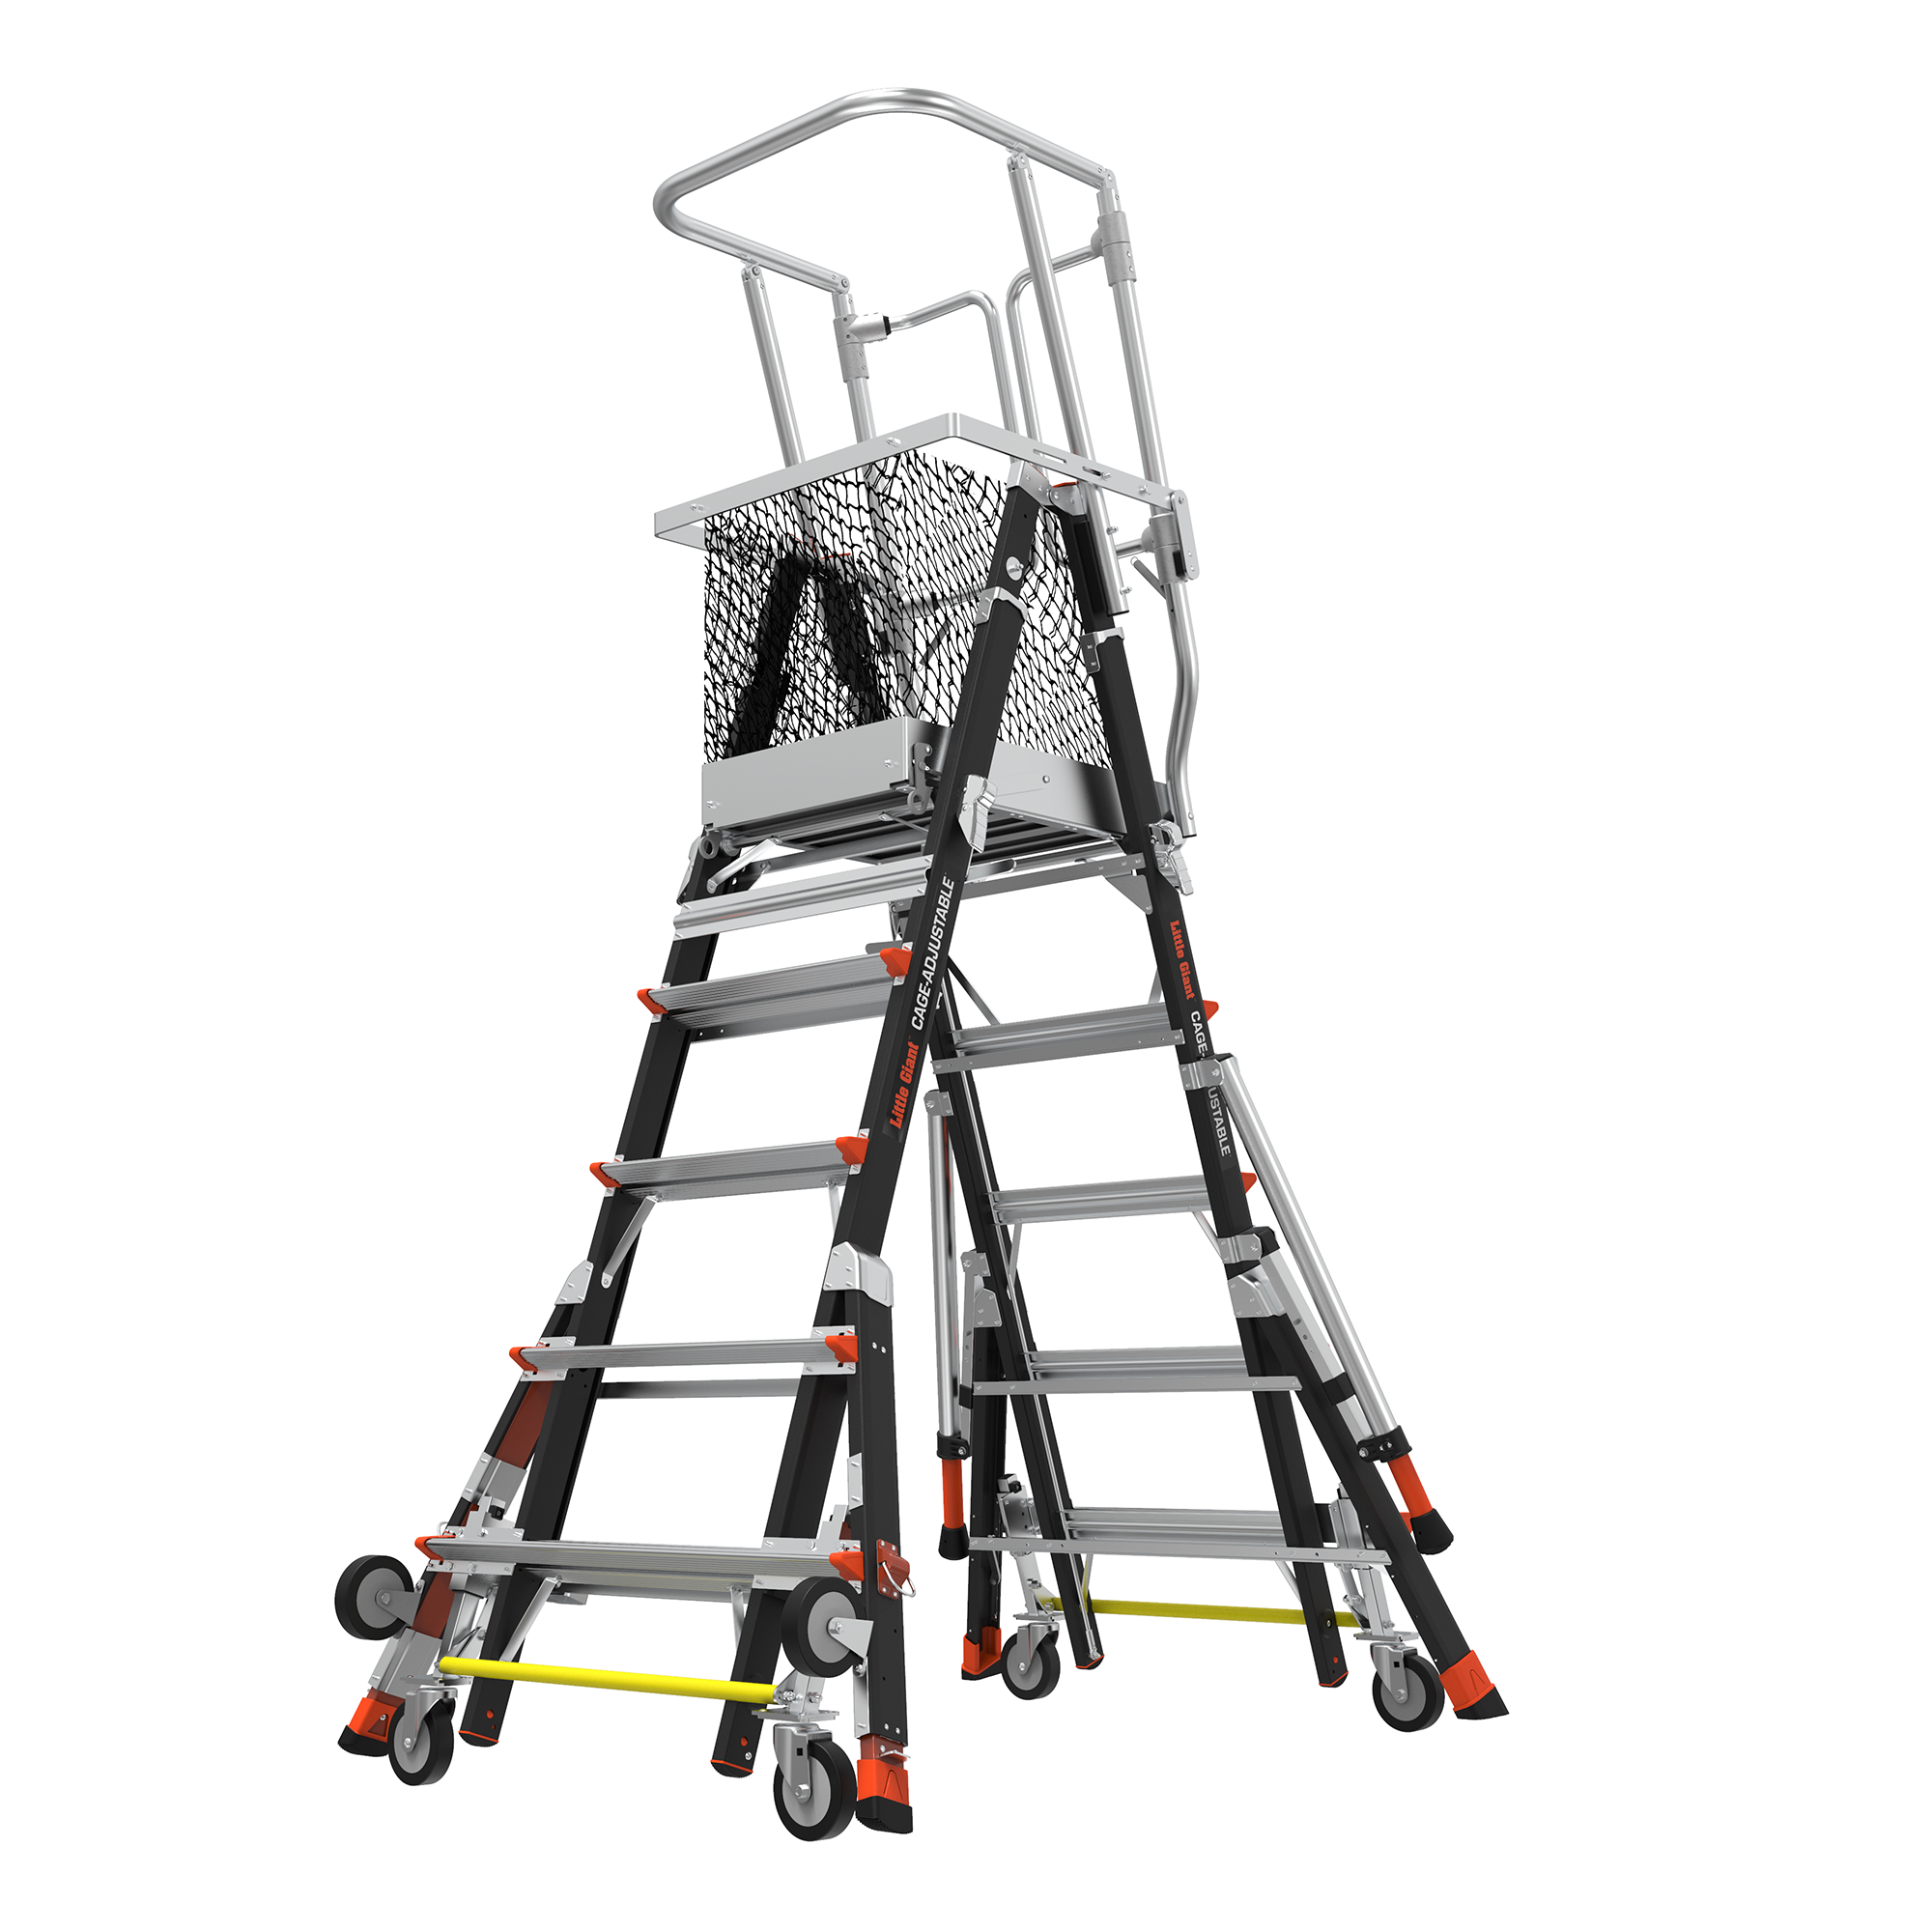 Adj. Safety Cage Model 5-9 Fiberglass Ladder, Ratchet Levelers, IAA